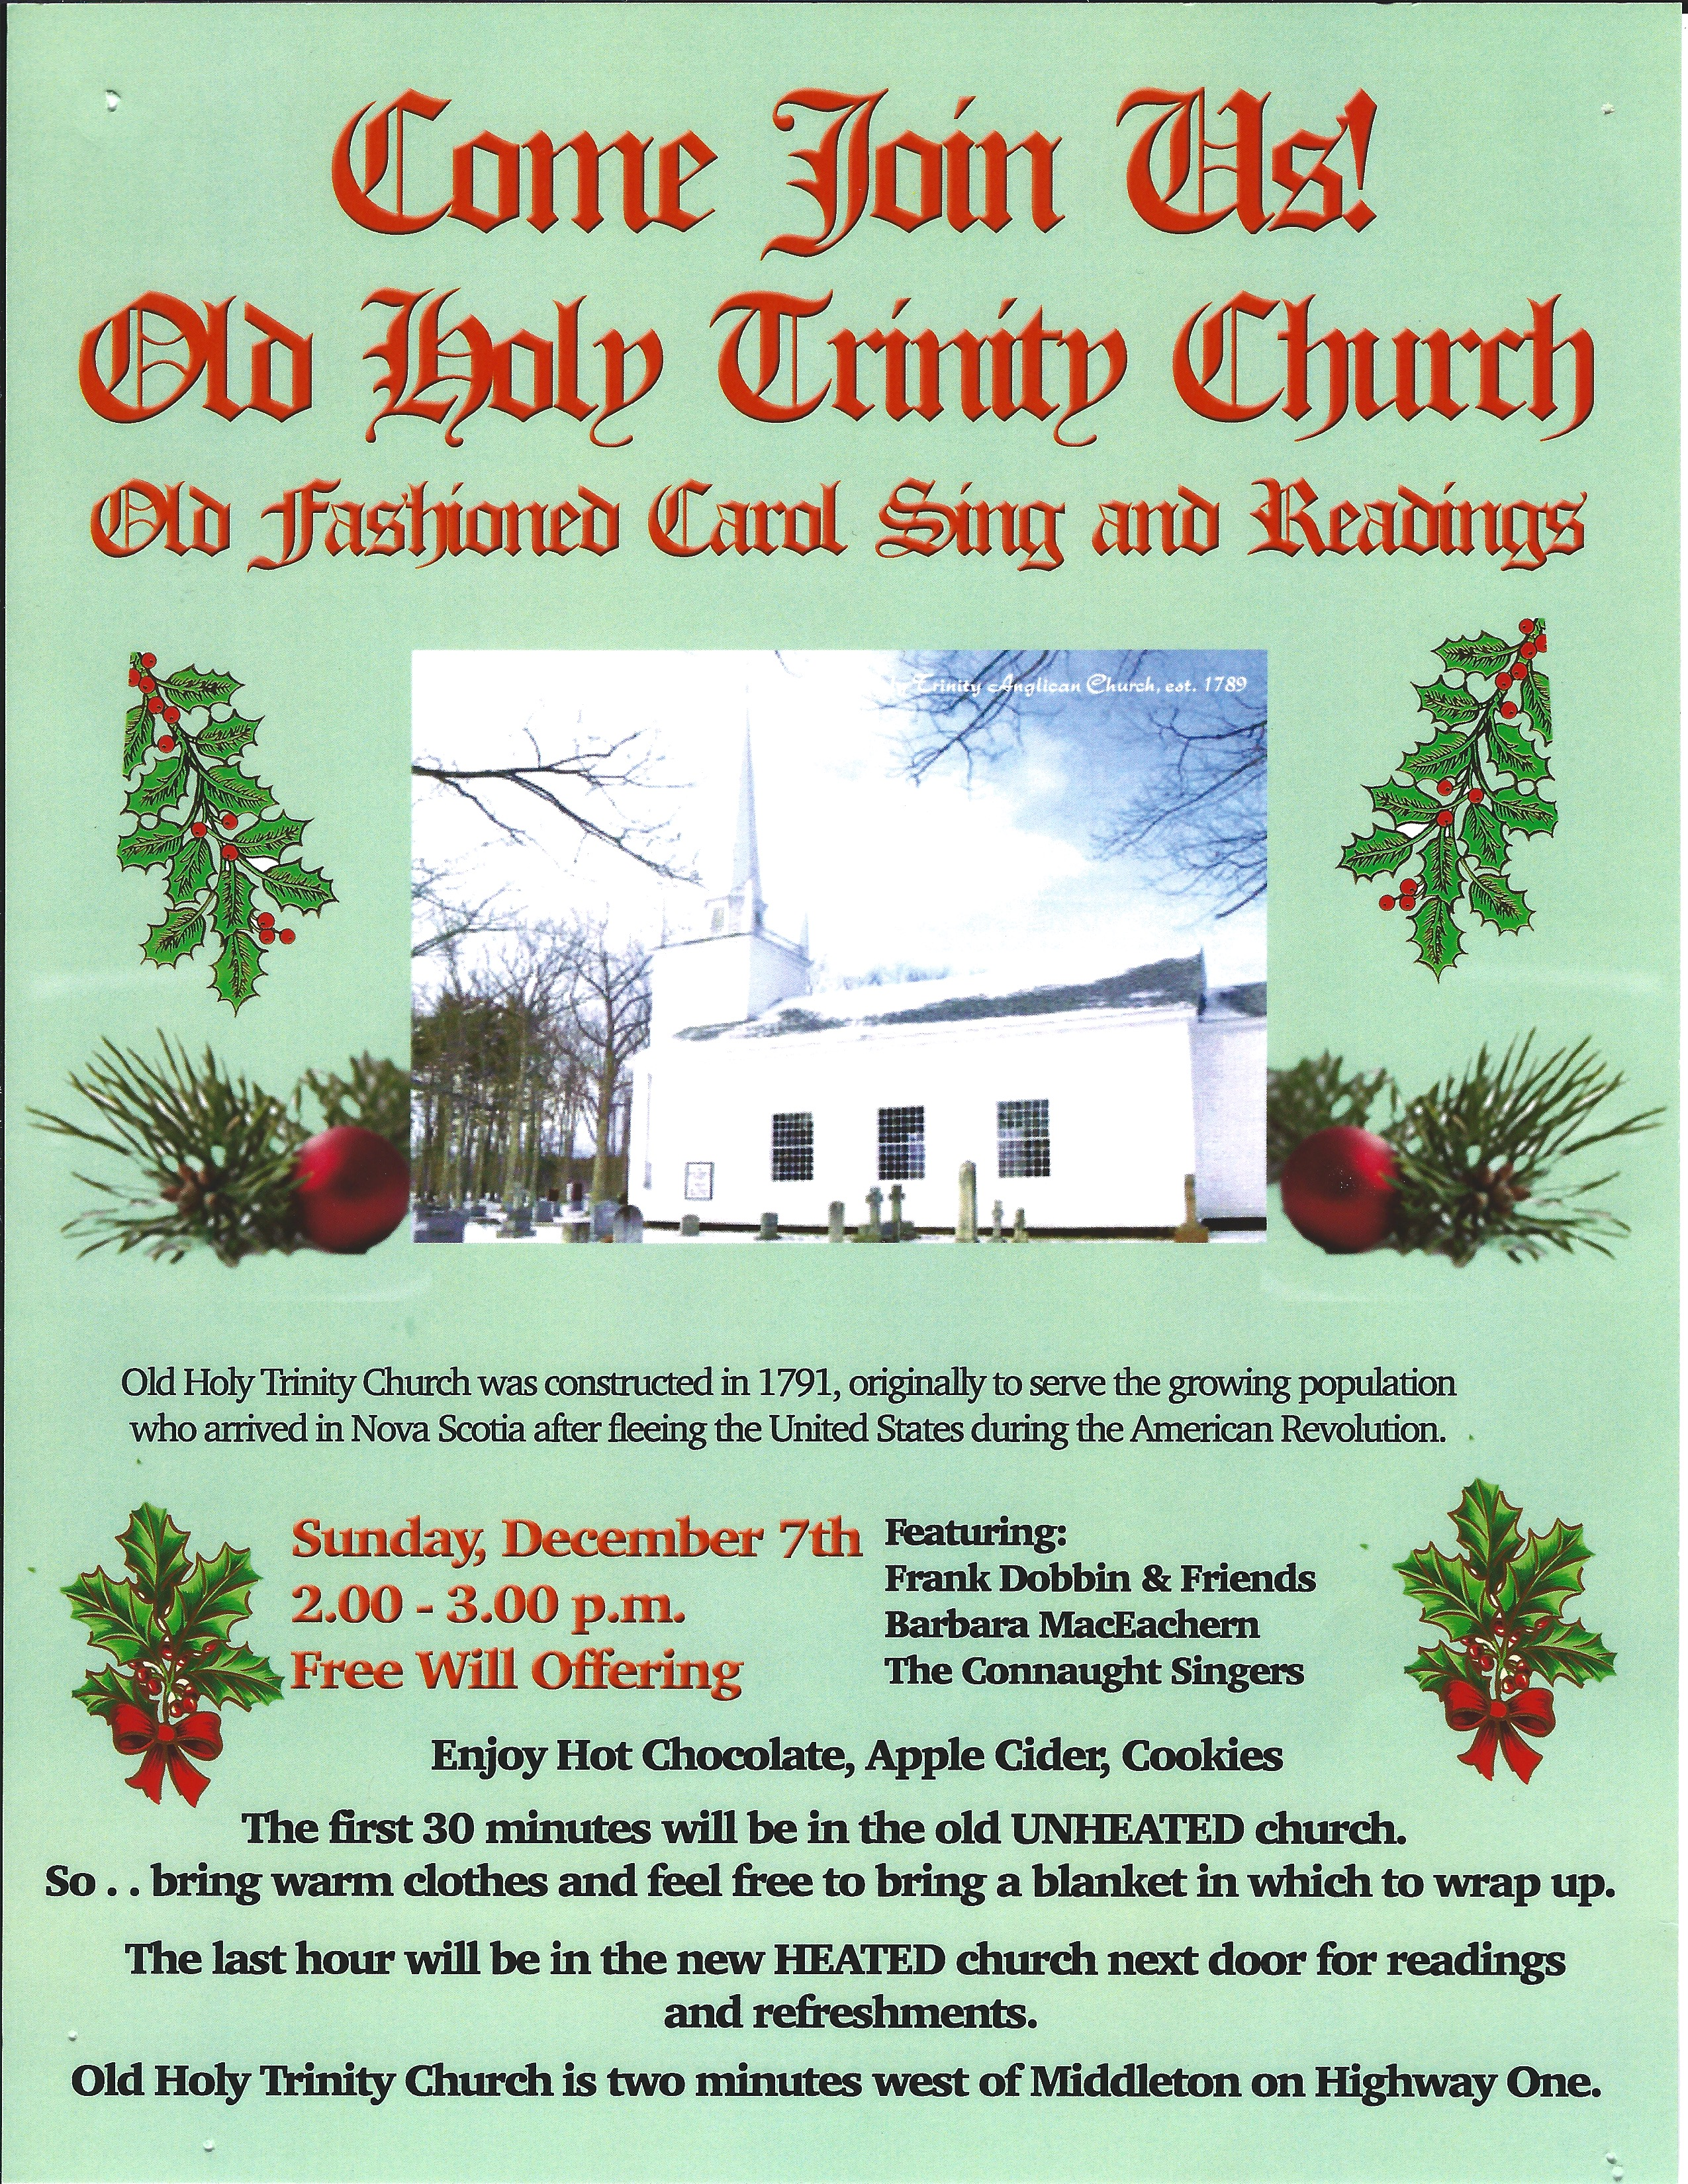 2014 Old Fashion Carol Sing and Reading Poster